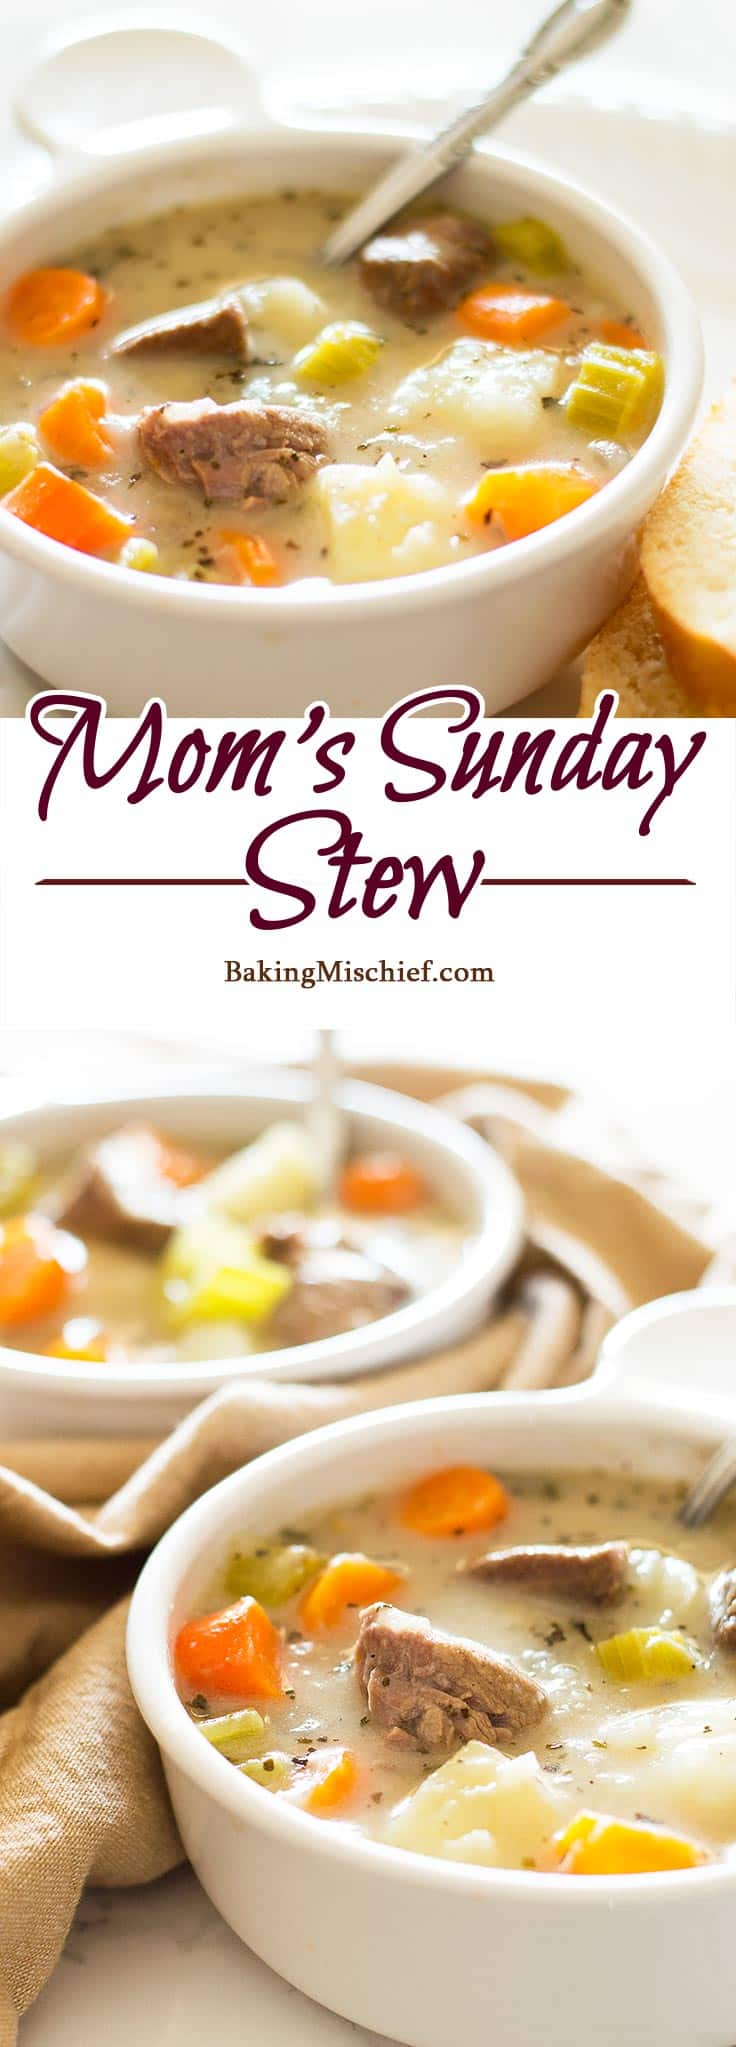 Mom's Sunday Stew - Completely from scratch delicious and hearty beef stew, just like Mom used to make it. Recipe includes nutritional information. BakingMischief.com